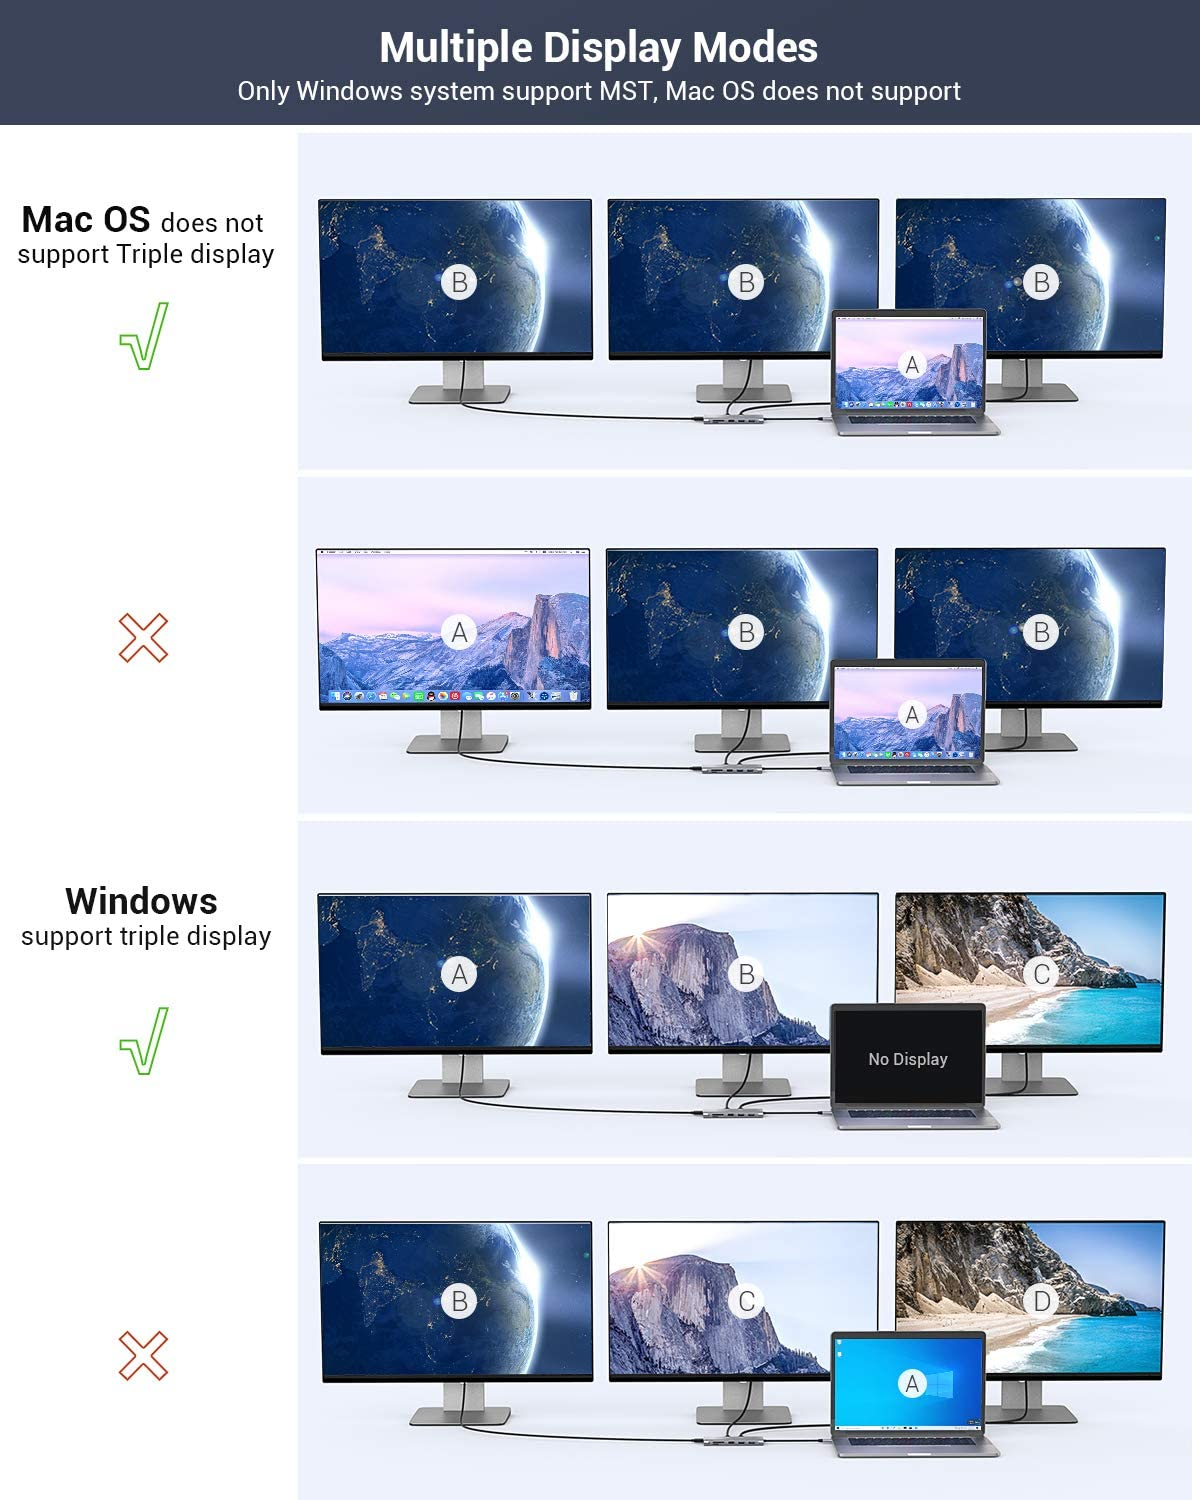 Docking Station, USB C Docking Station, USB C Hub 13 in 1 Triple Display with 100W PD Charging, 2 HDMI, DP, USB-C Data Transfer, 3 USB 3.0, 2 USB 2.0 for MacBook Pro and Type C Laptops